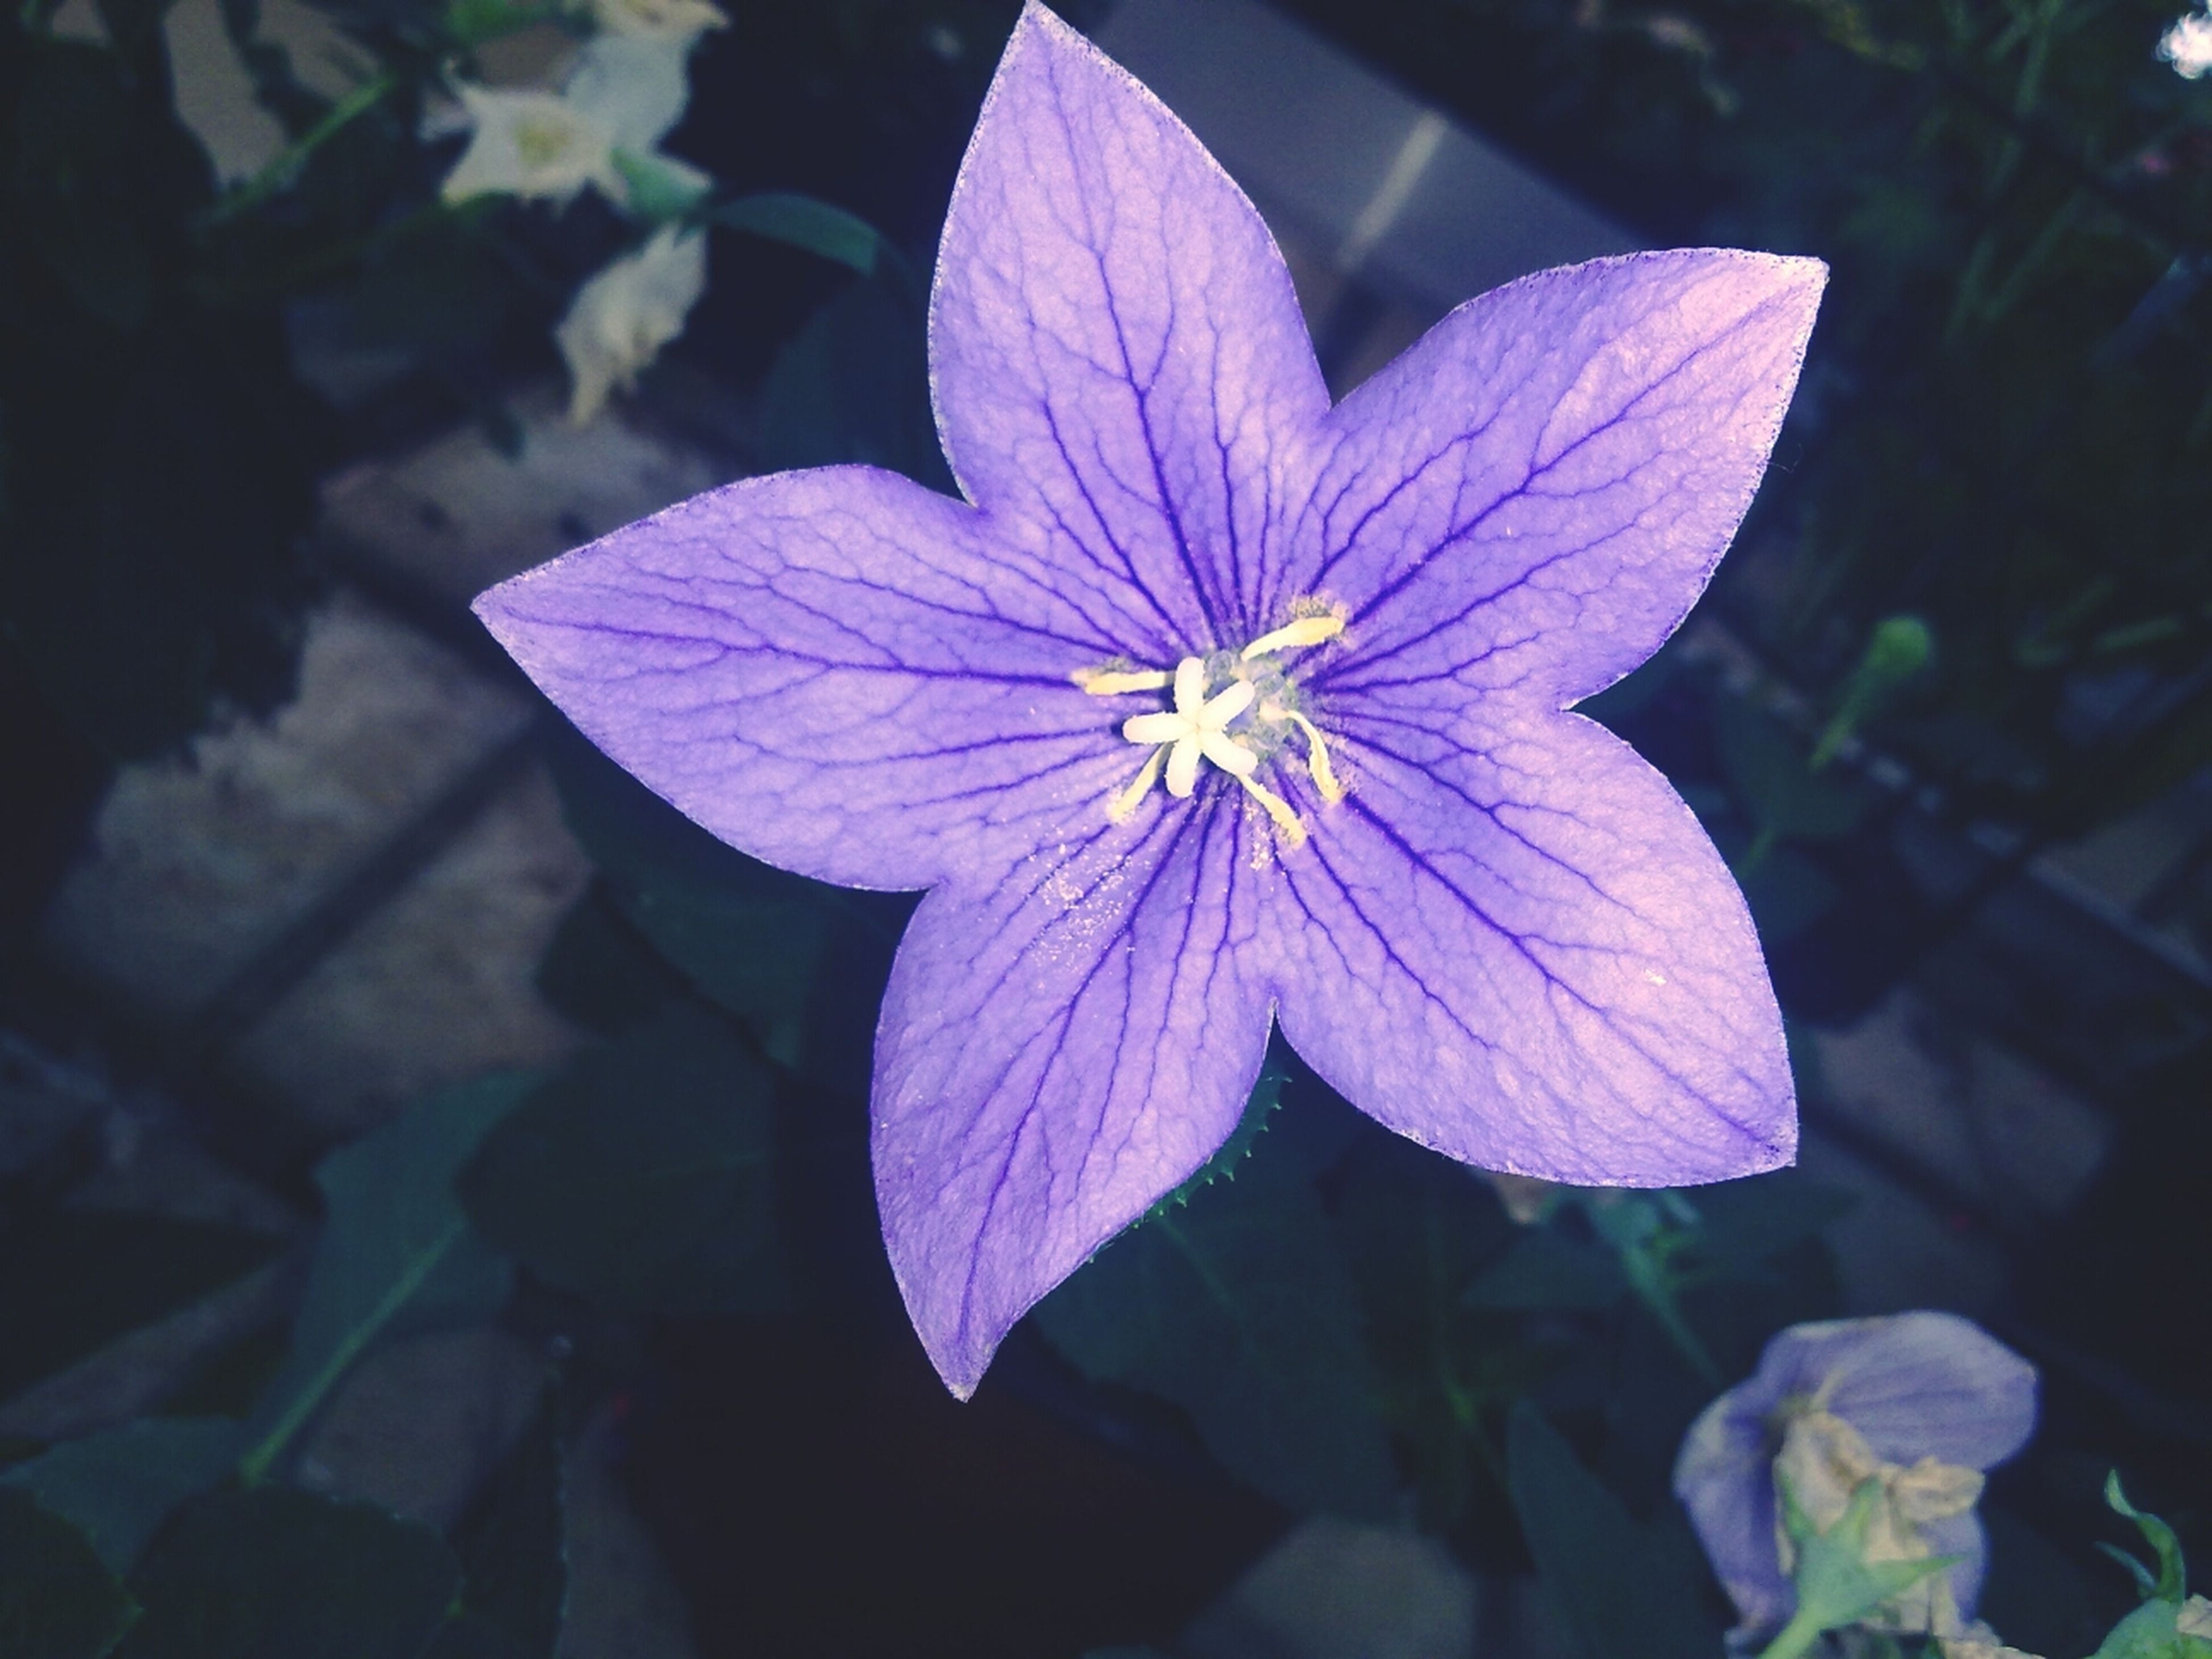 flower, petal, fragility, flower head, freshness, single flower, beauty in nature, growth, close-up, leaf, blooming, nature, pollen, plant, stamen, focus on foreground, high angle view, in bloom, purple, day